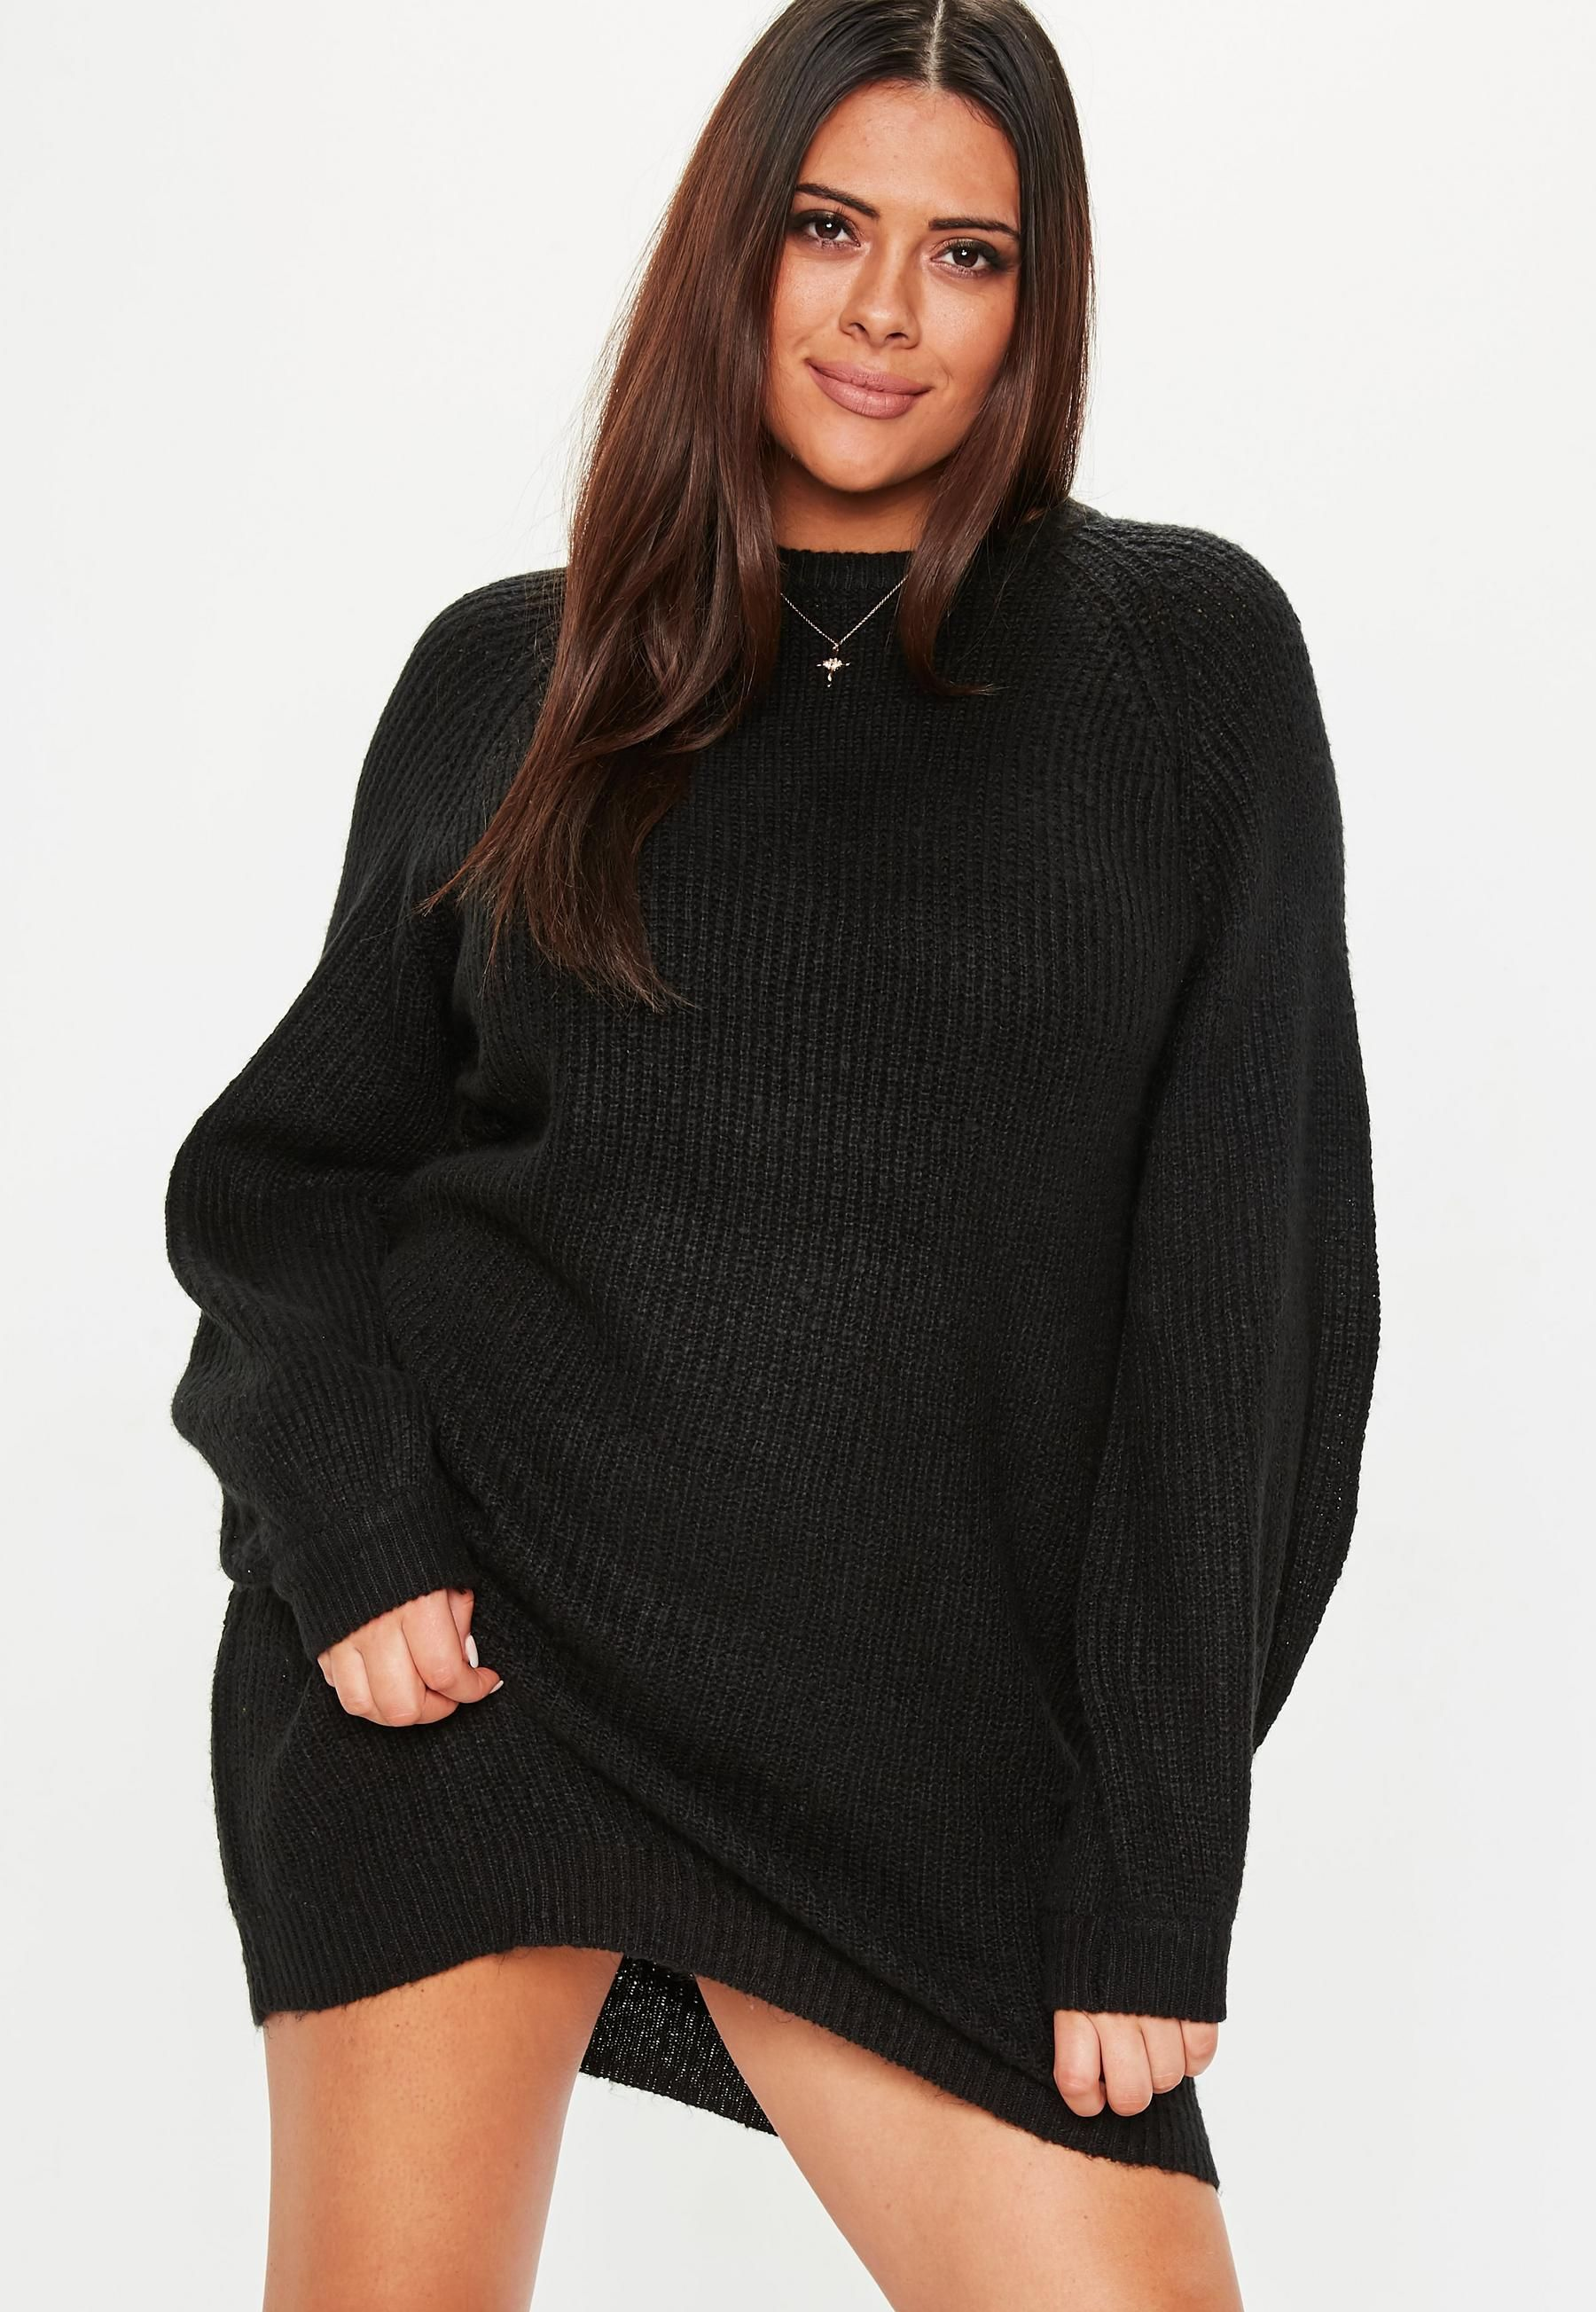 Plus Size Black Oversized Sweater Dress   Missguided in 2019 ...